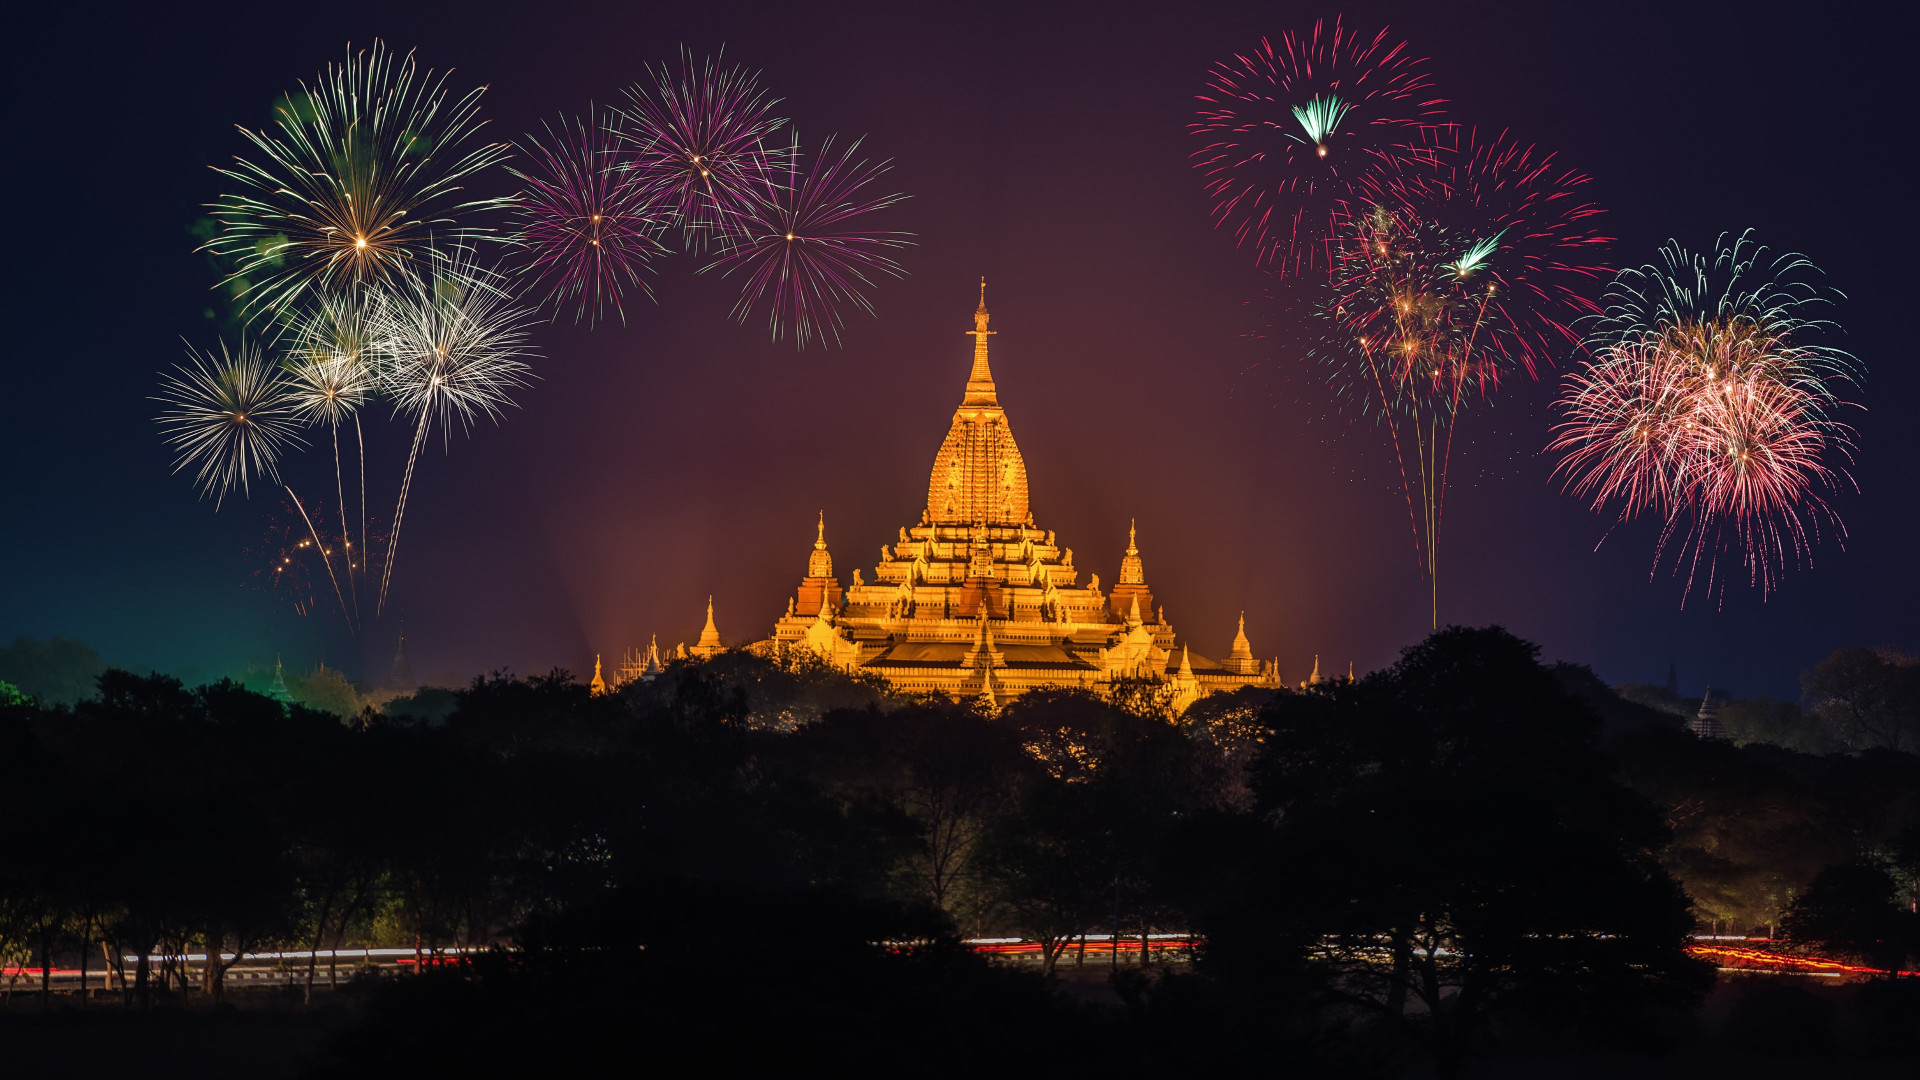 Fireworks above Ananda Phato temple | 1920x1080 wallpaper